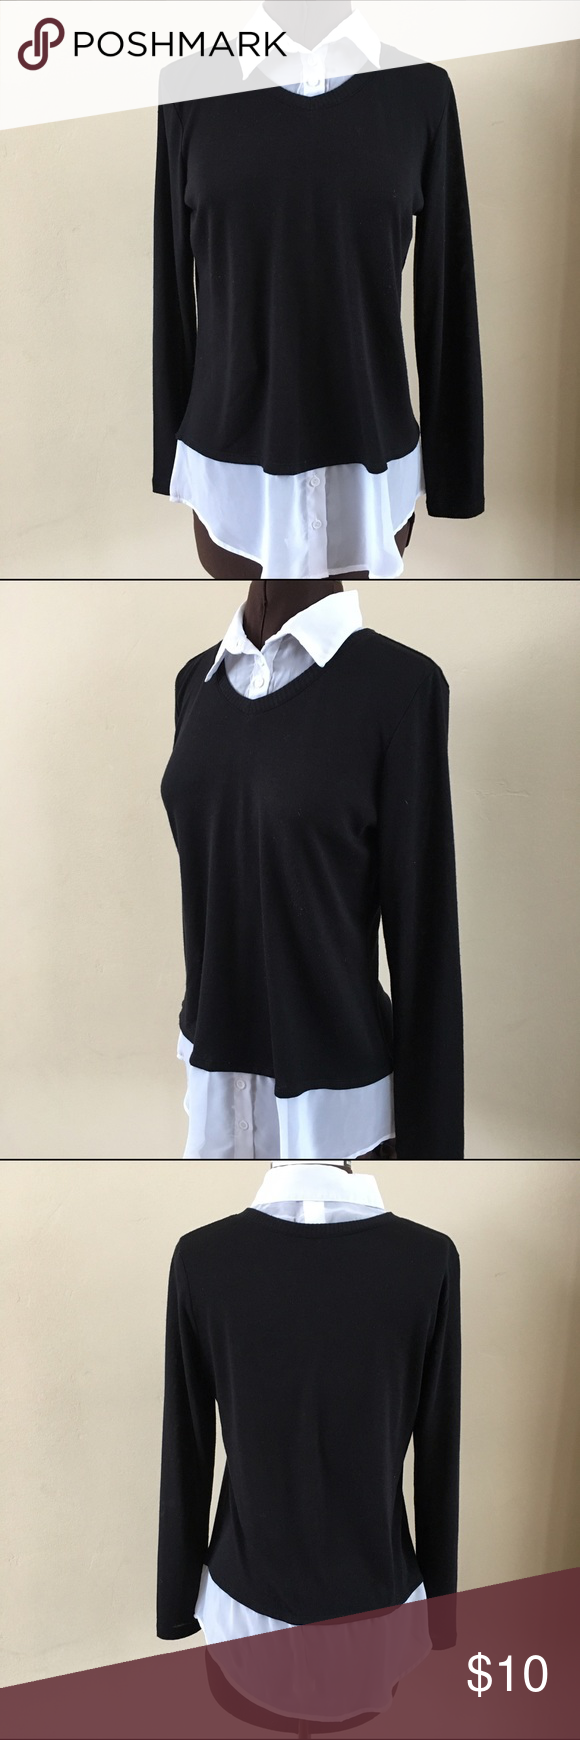 Lightweight Sweater With Built In Blouse Perfect Wear Everywhere